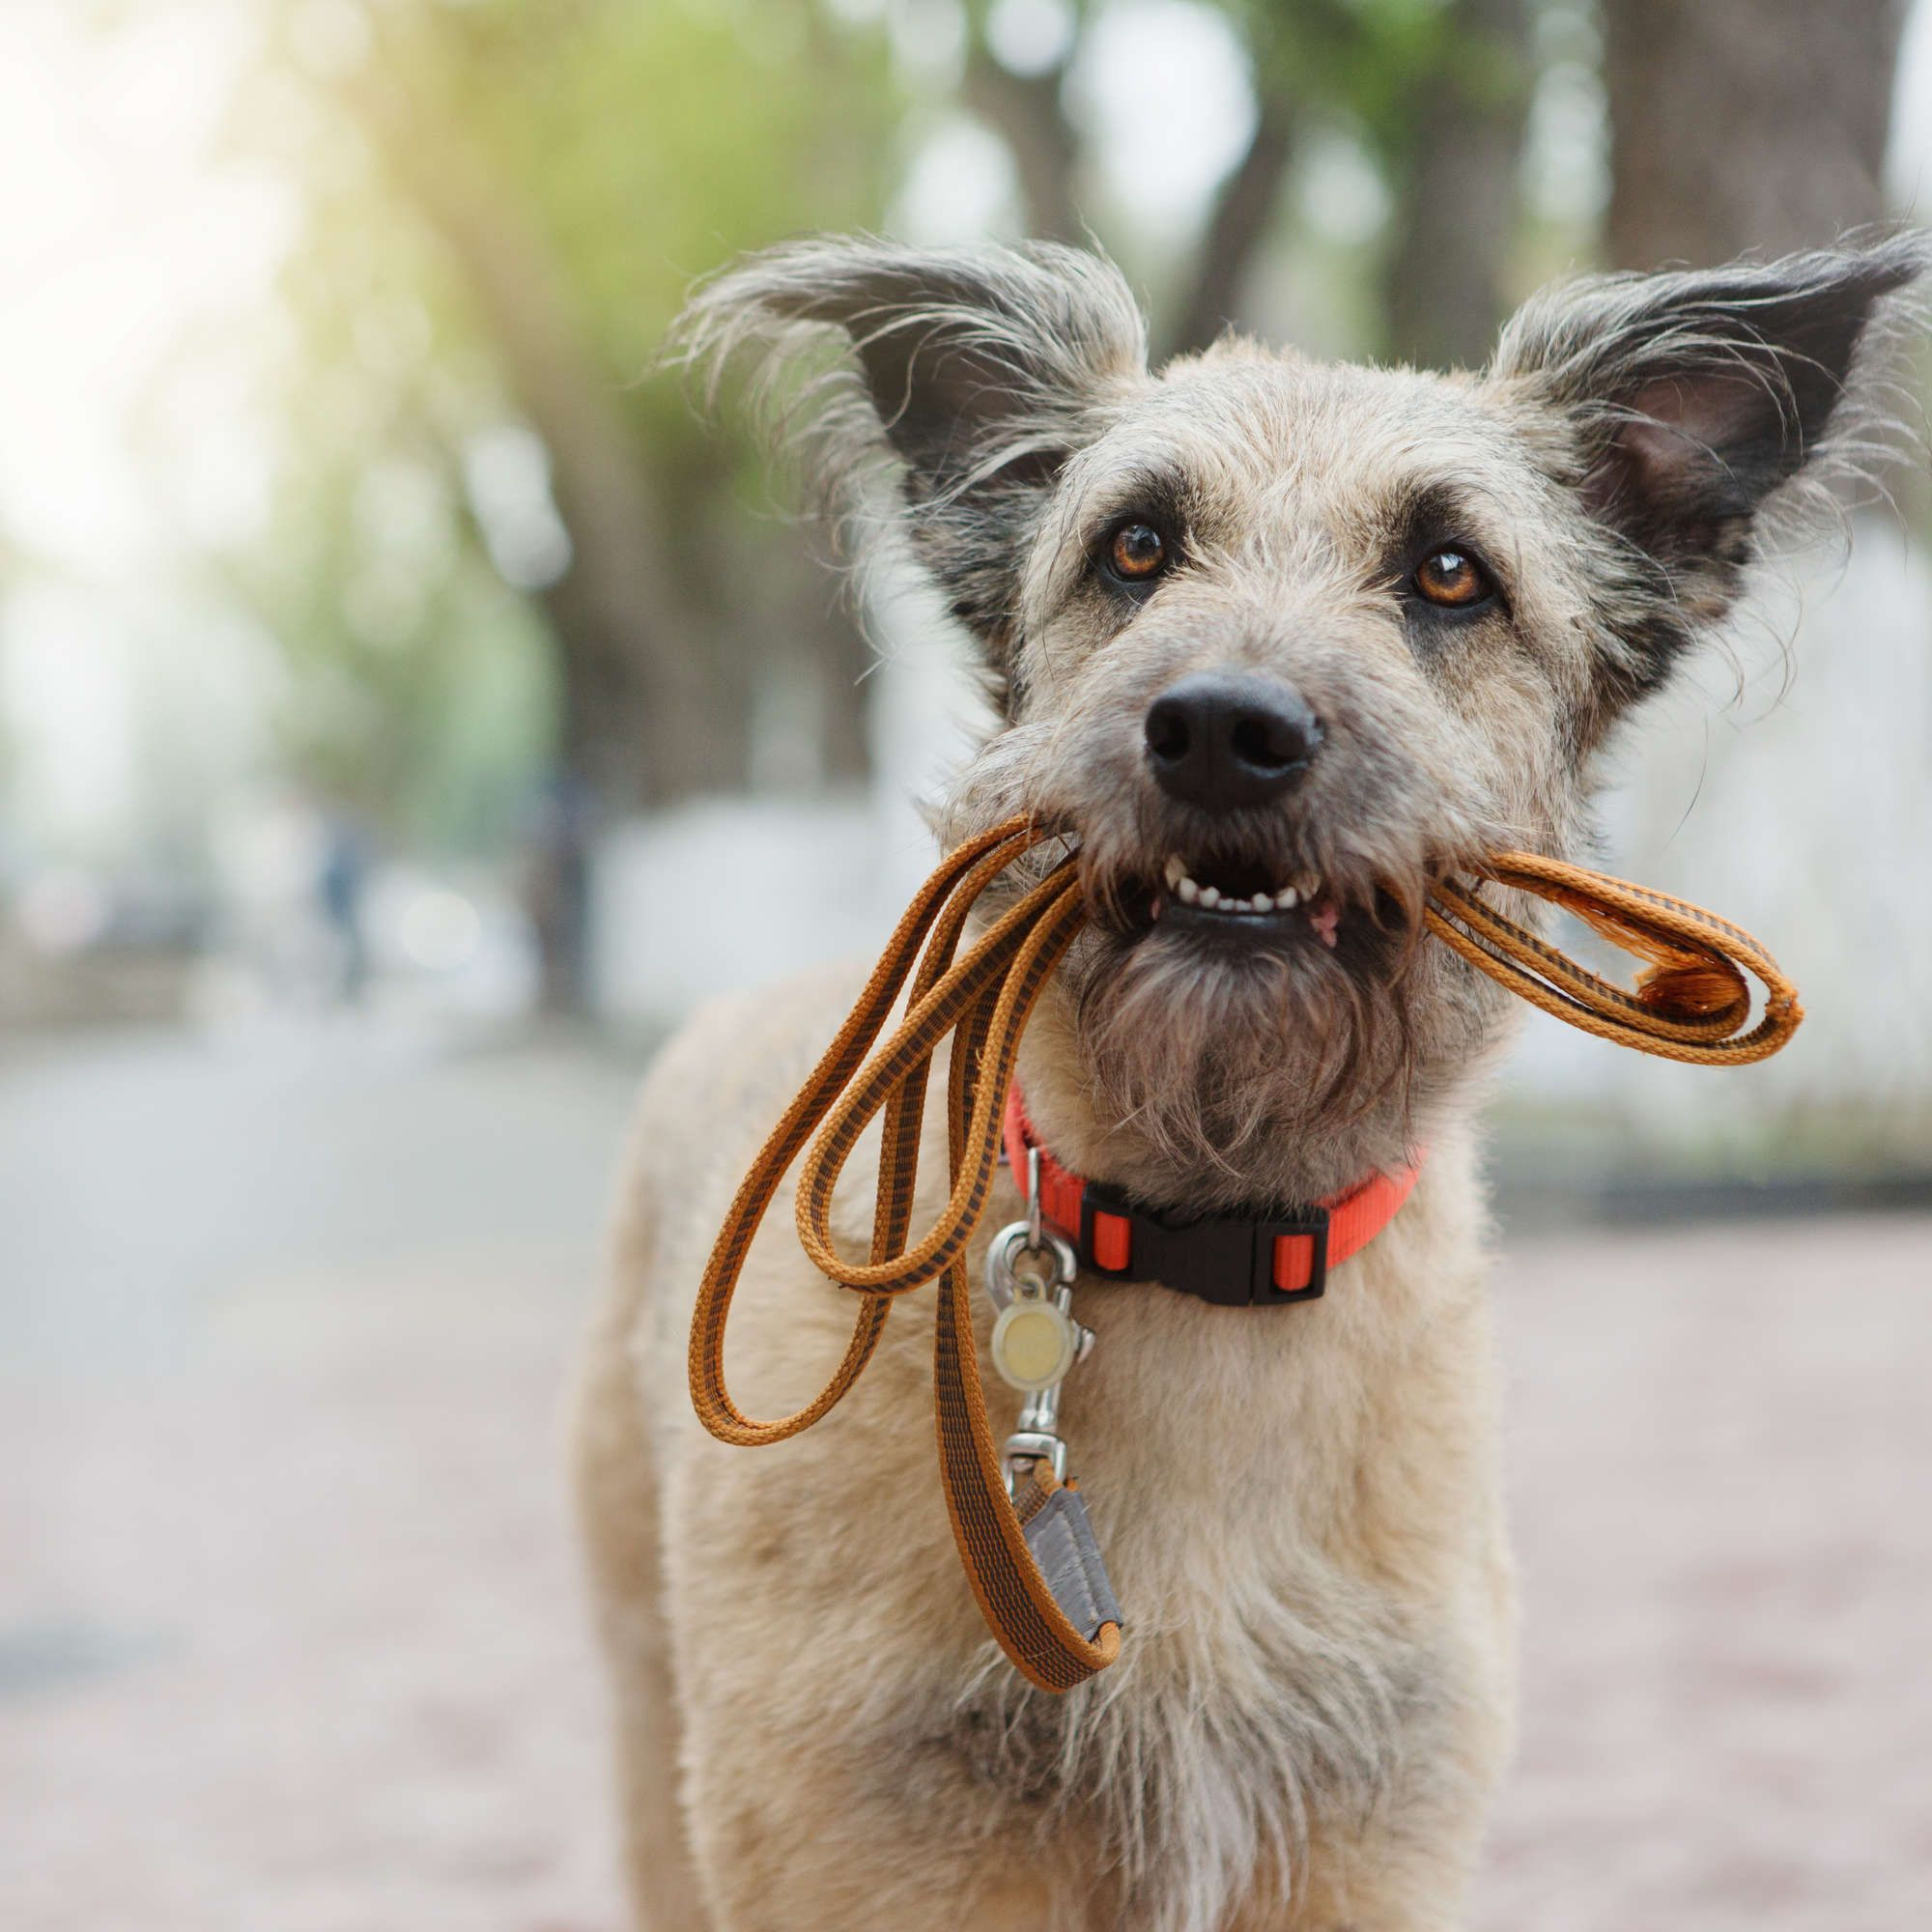 These Are the Most (and Least) PetFriendly Cities in the